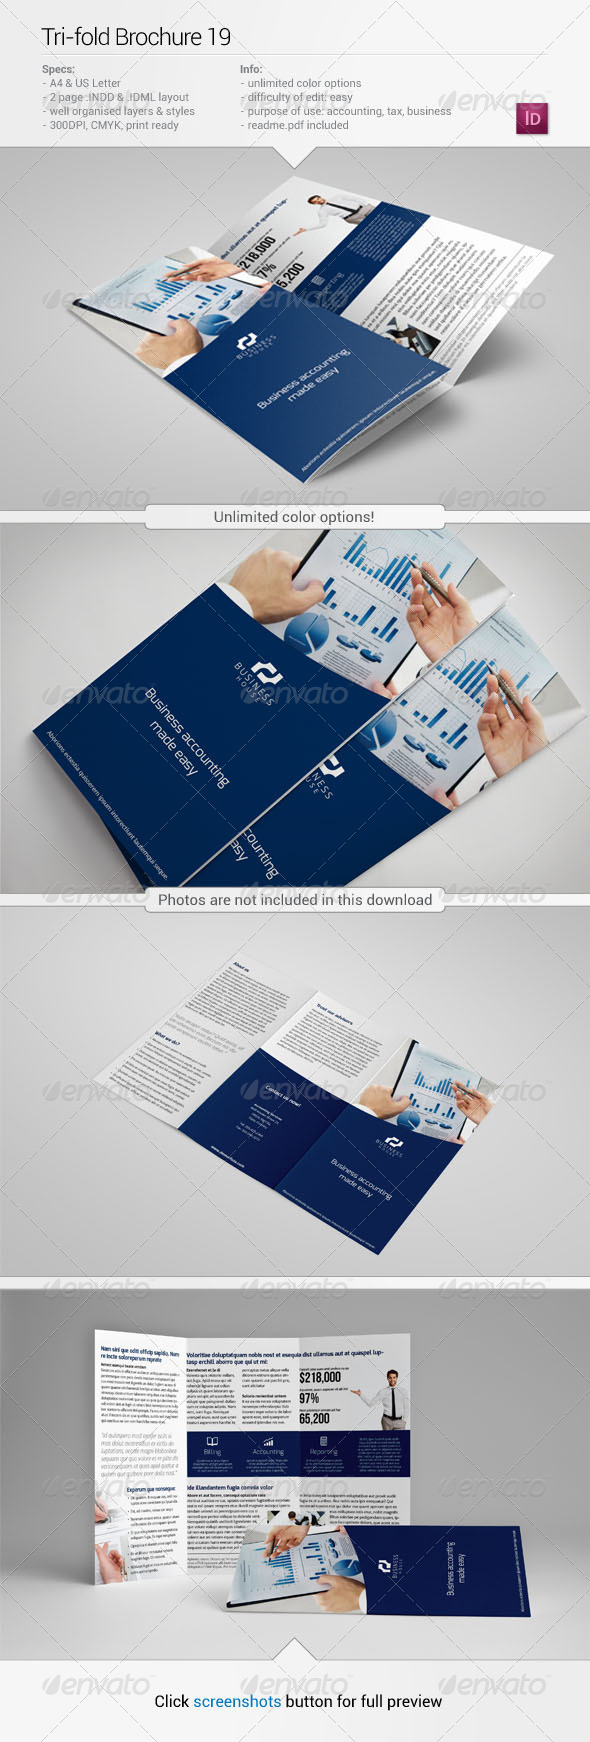 GraphicRiver Tri-Fold Brochure 19 5969850